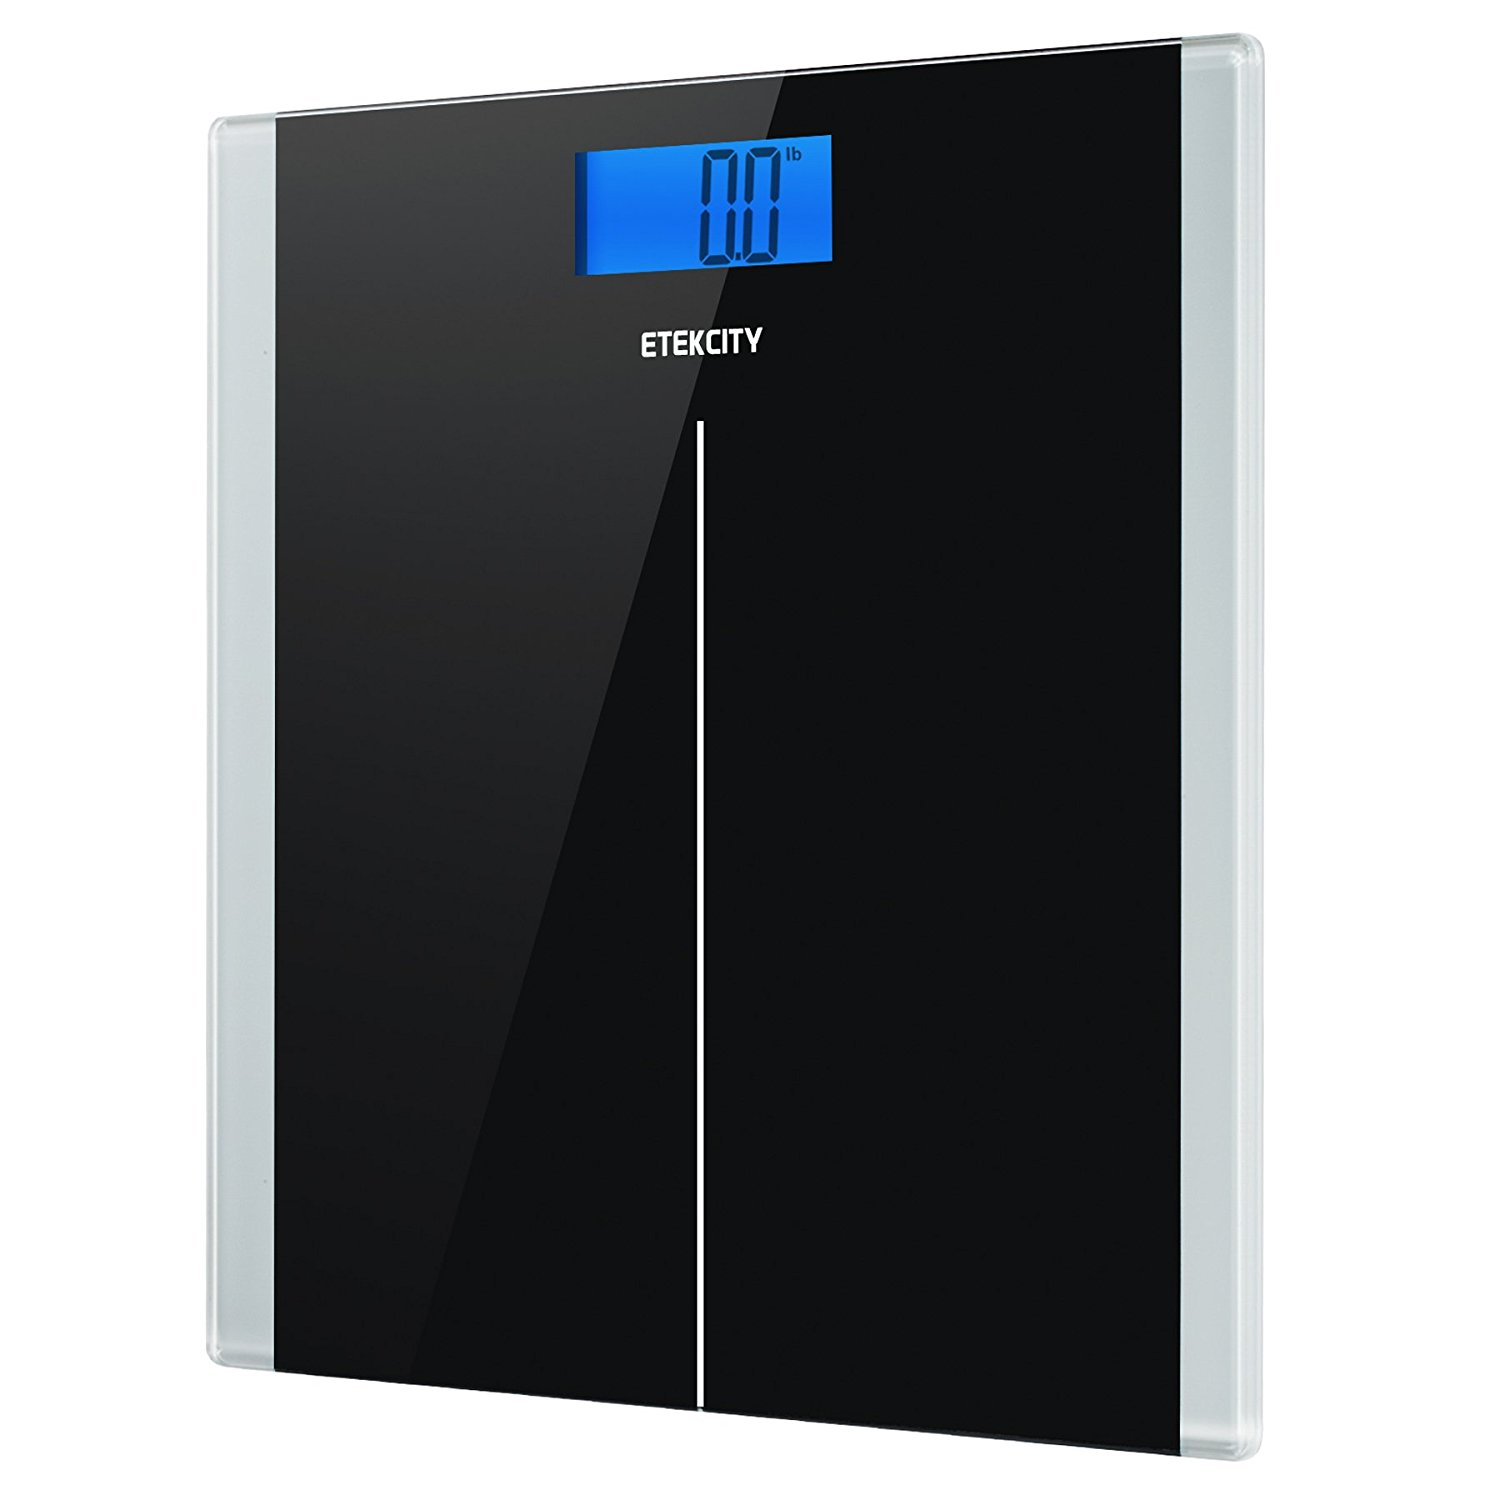 Wondrous Best Bathroom Scales Find The Best Digital Or Body Fat Home Remodeling Inspirations Genioncuboardxyz